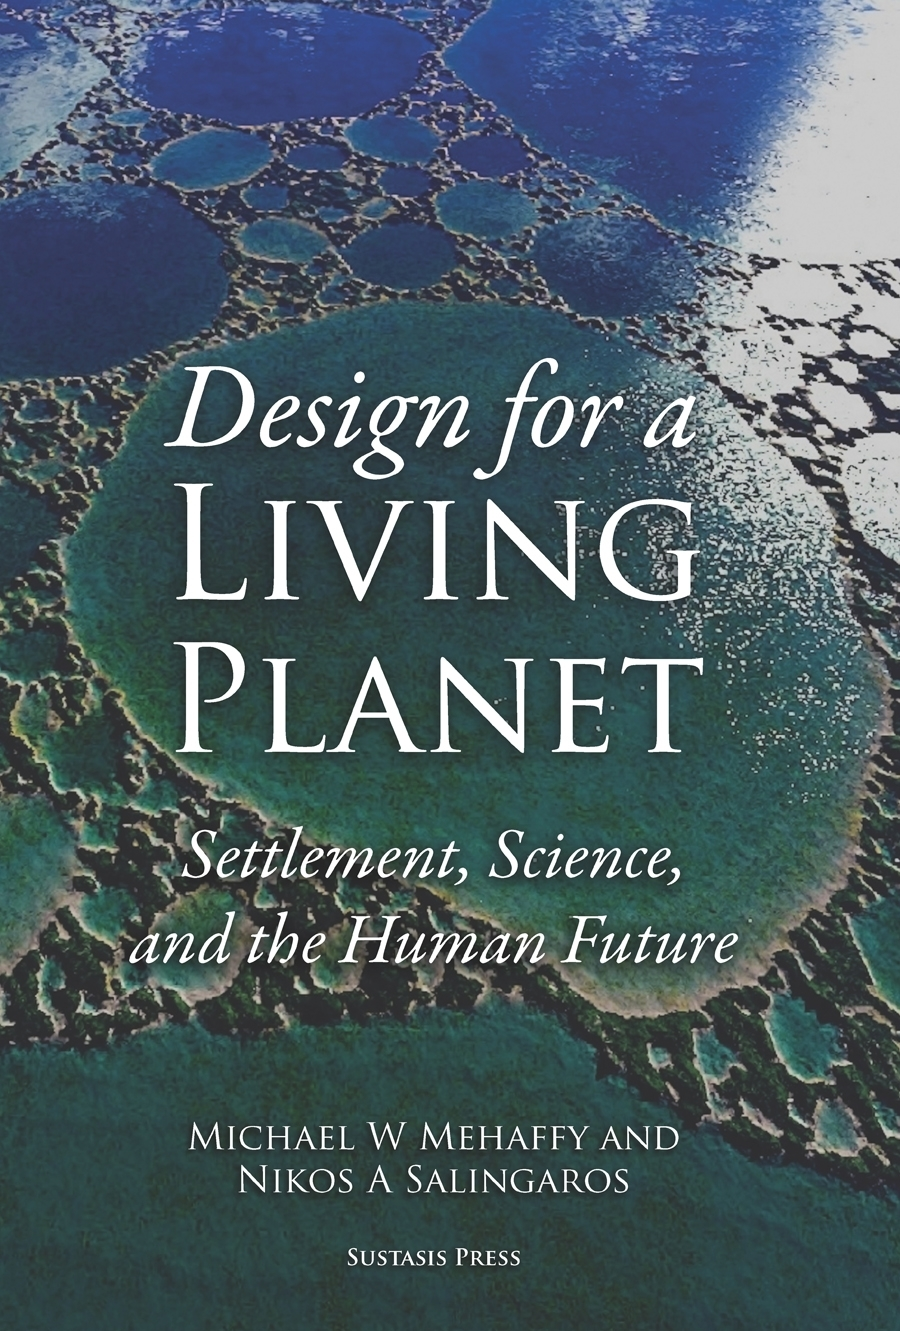 Cover Image: Design for a Living Planet: Settlement, Science, and the Human Future